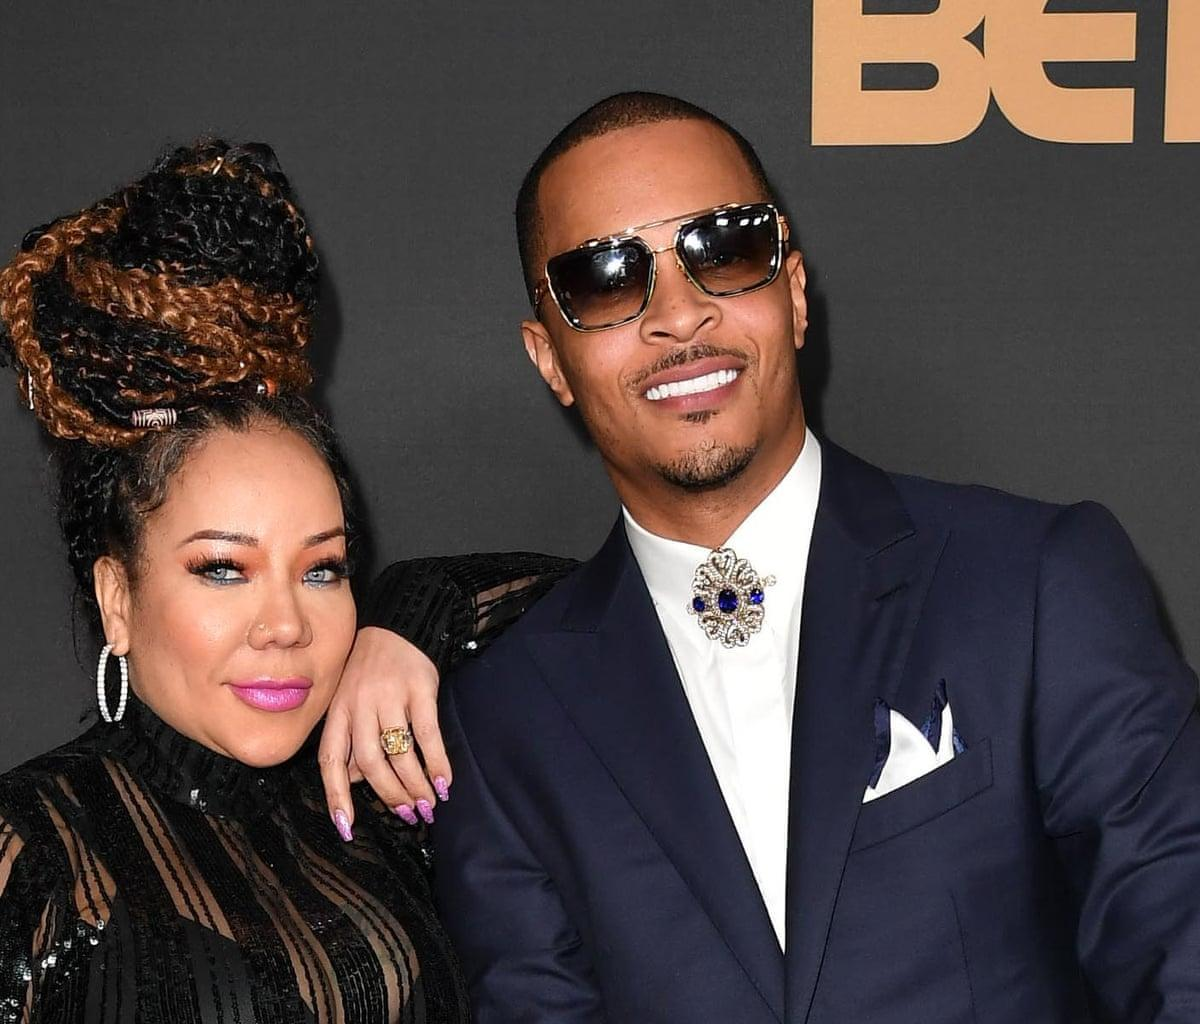 T.I. Shares His Favorite Recent Reads - Check Them Out Here